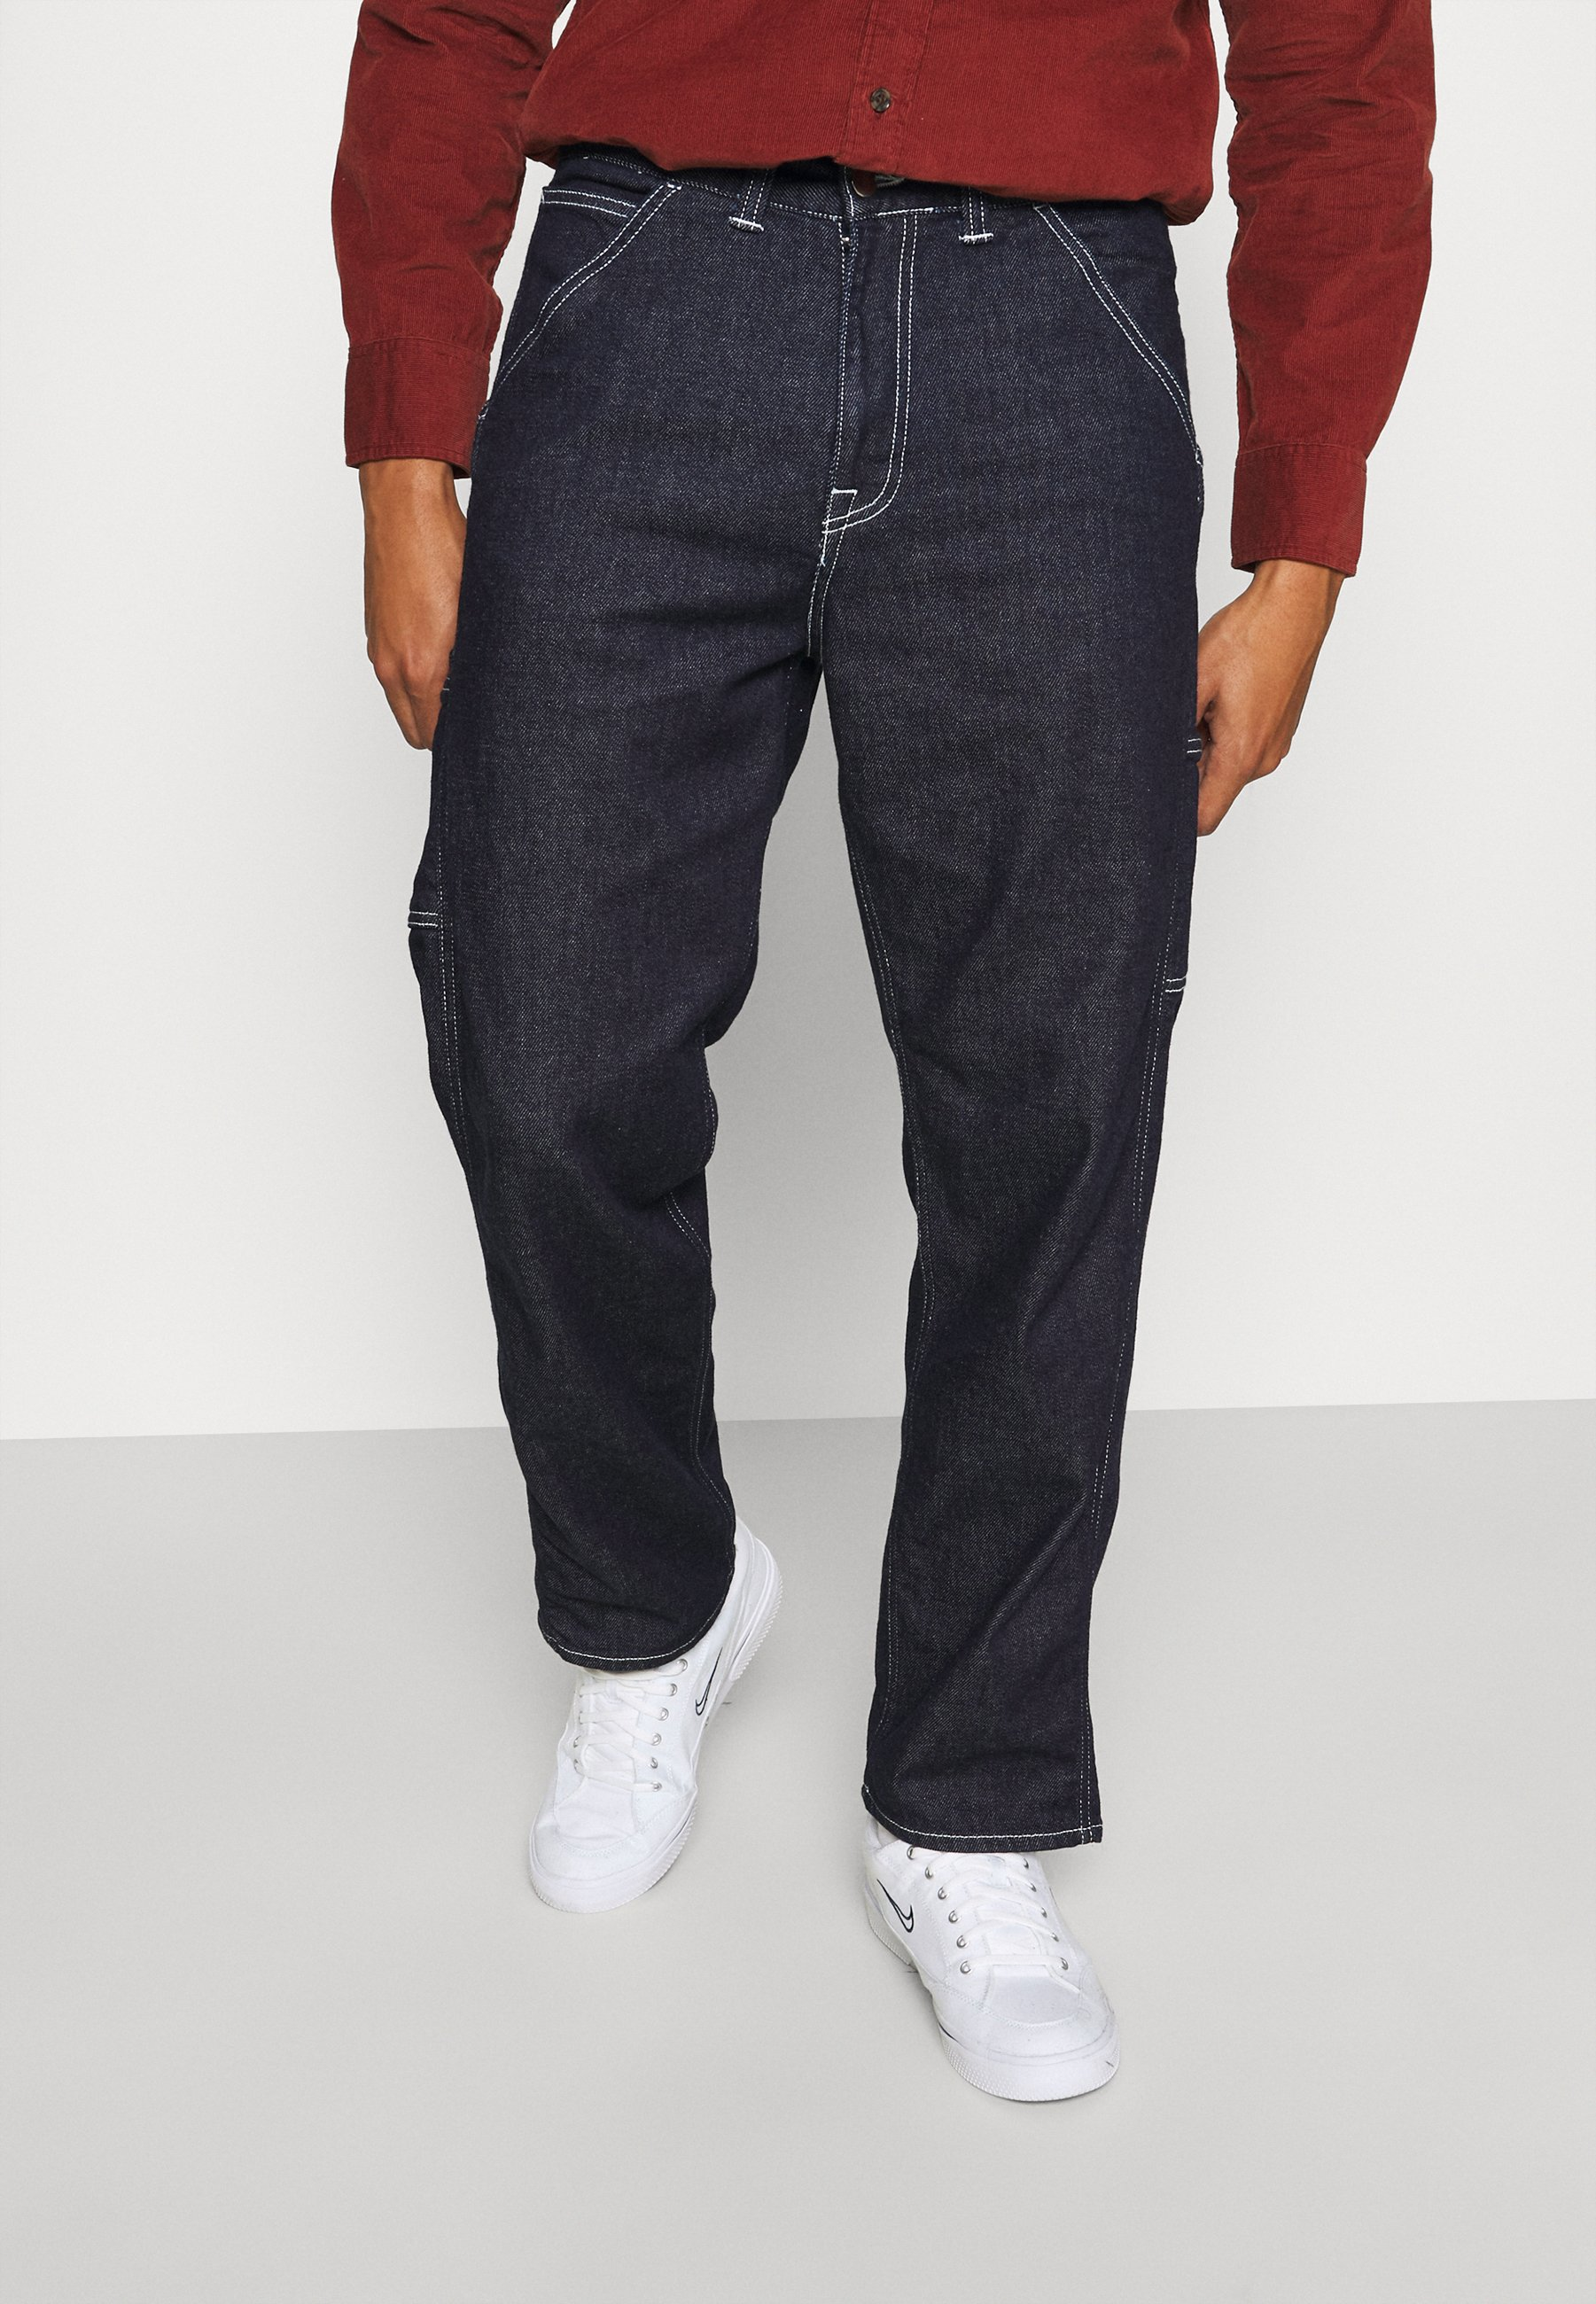 Uomo OPERATE PANT - Jeans baggy